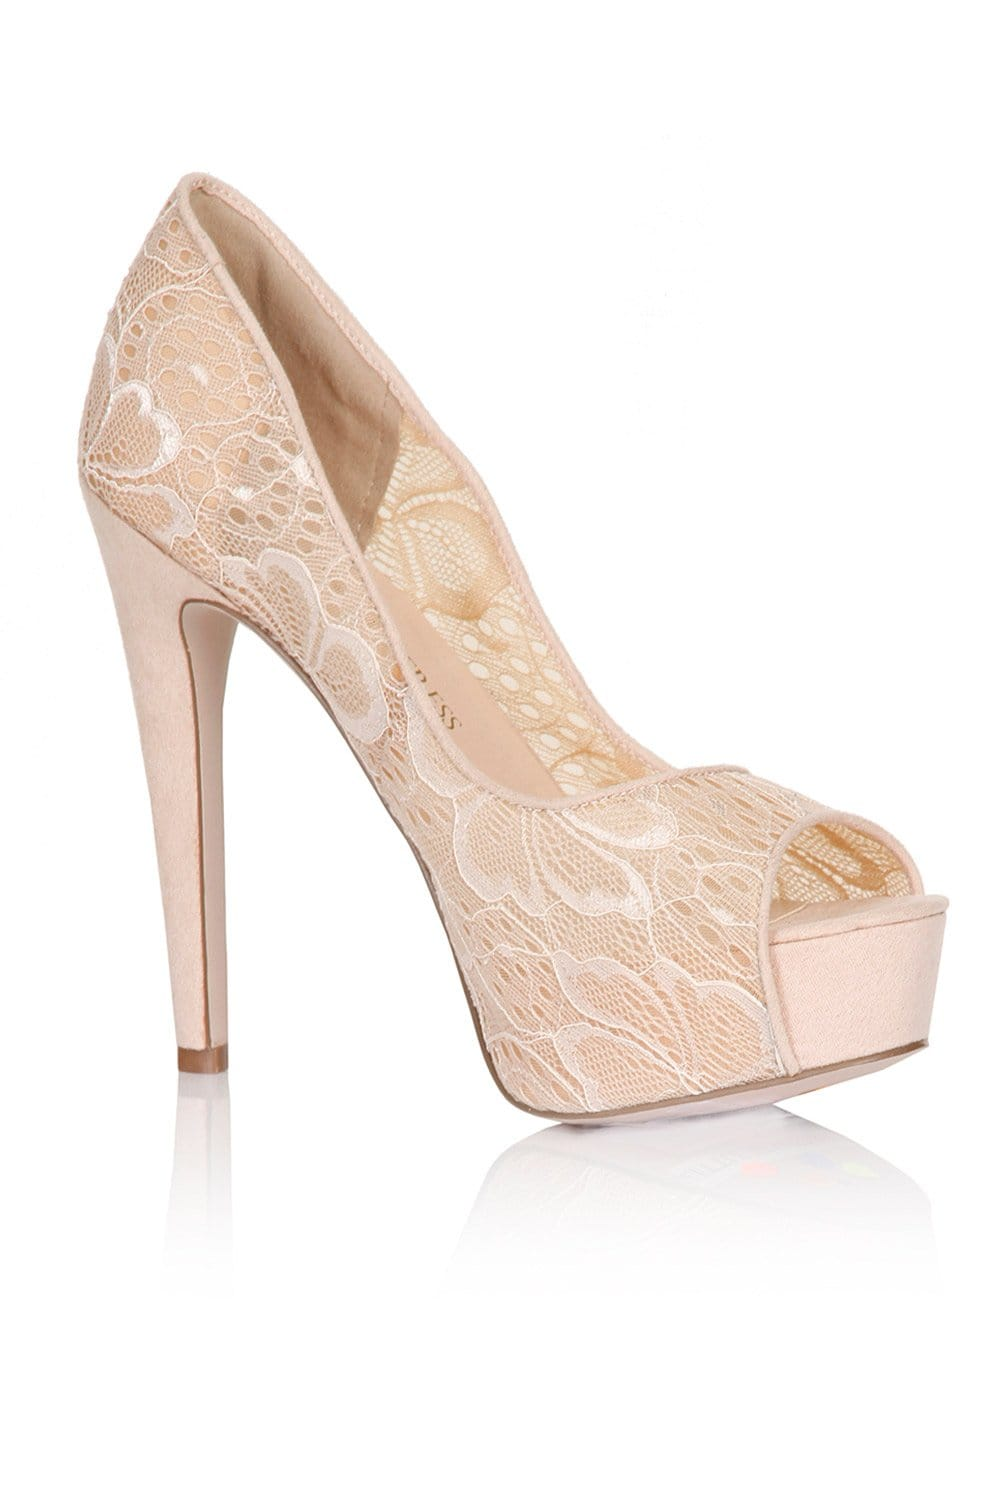 Nude Floral Lace Peep Toe Heels - from Little Mistress UK